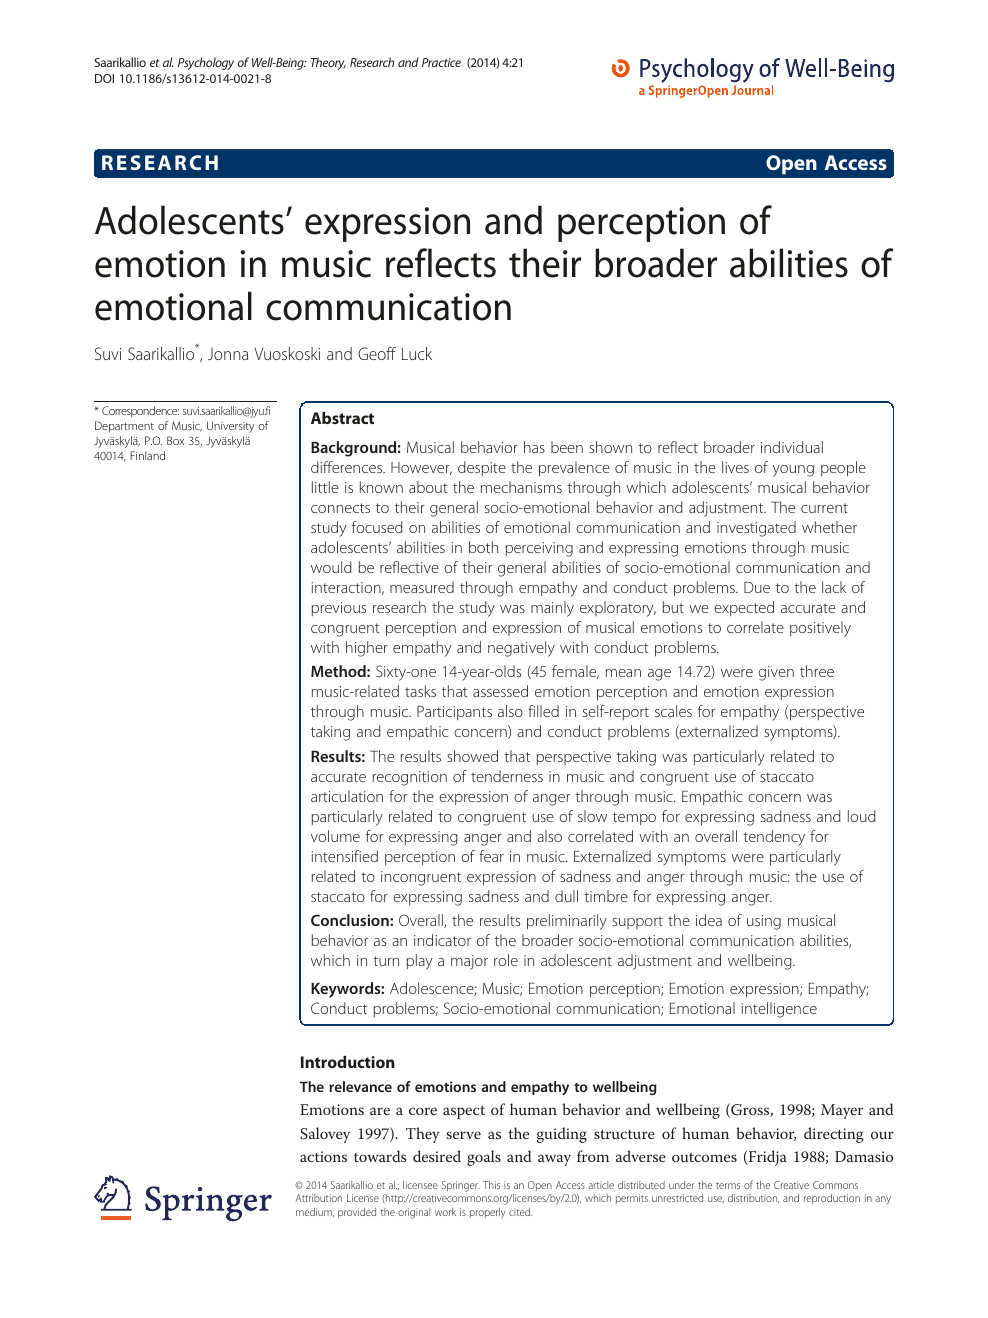 Adolescents' expression and perception of emotion in music reflects